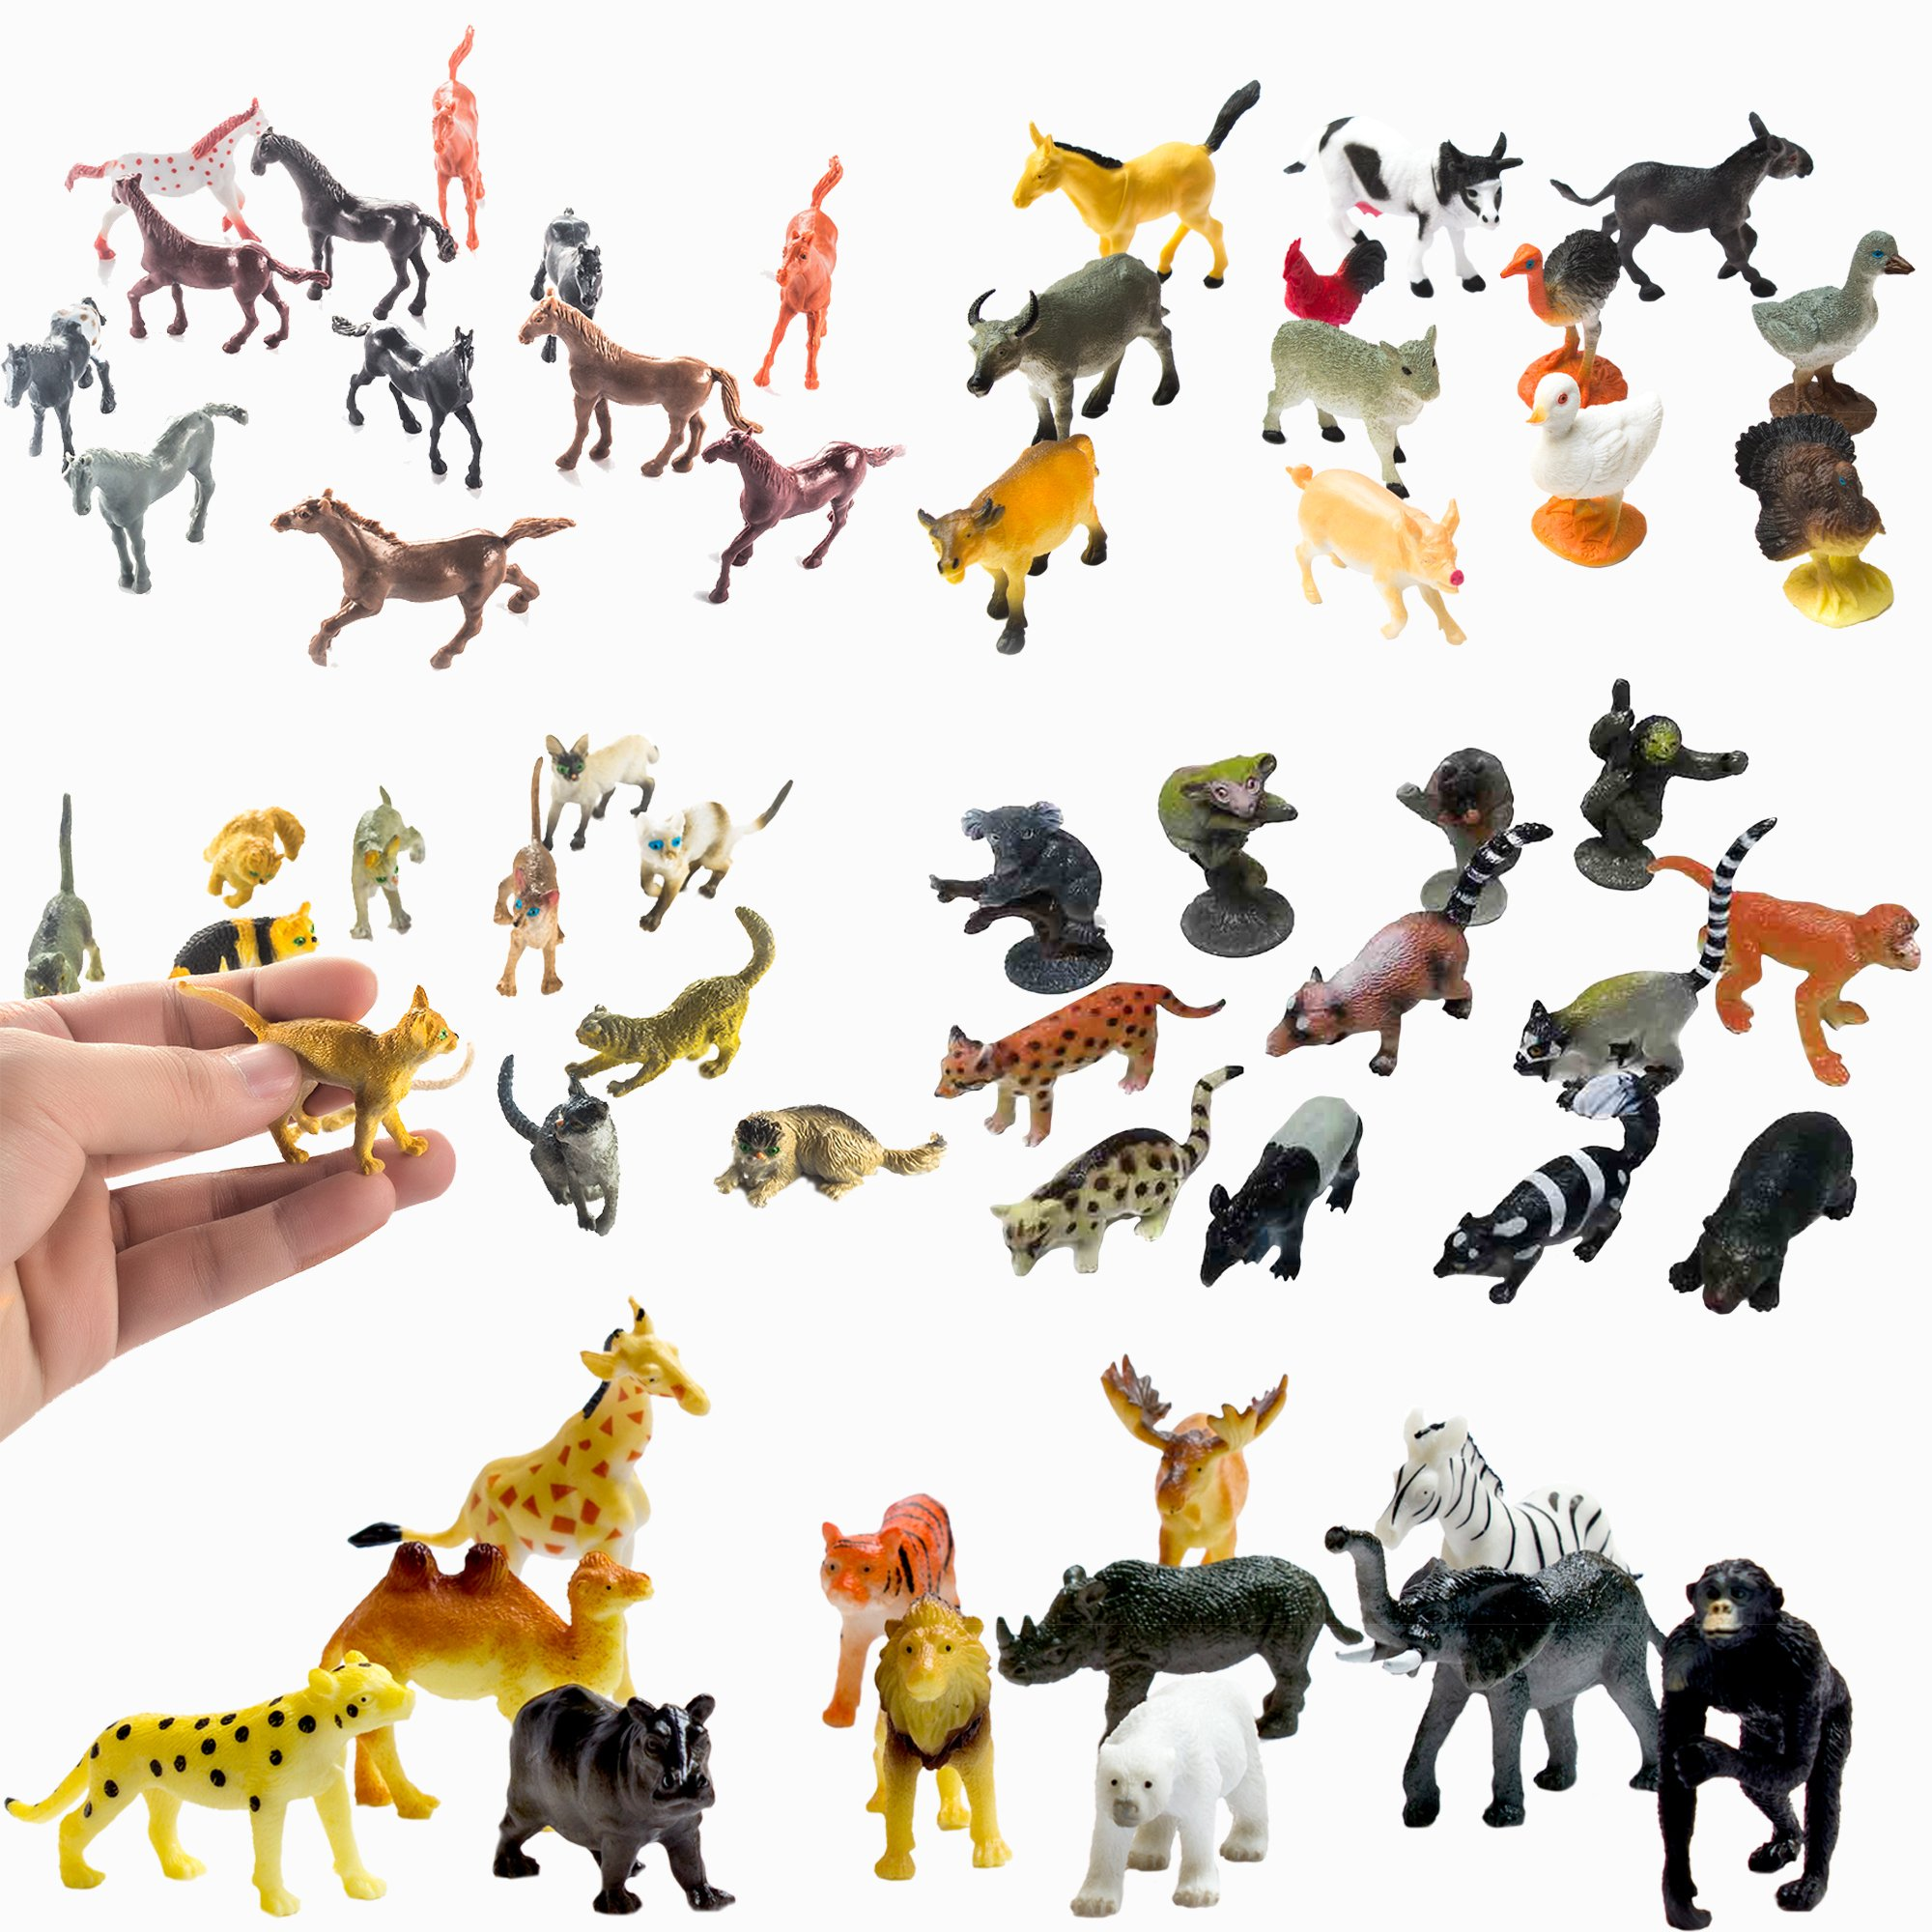 Fun Central BC831 Animal party pack - 12pieces farm animals, 12pieces rain forest animals, 12pieces 2'' cat figures, 12pieces vinyl plastic horses and 12pieces safari animals